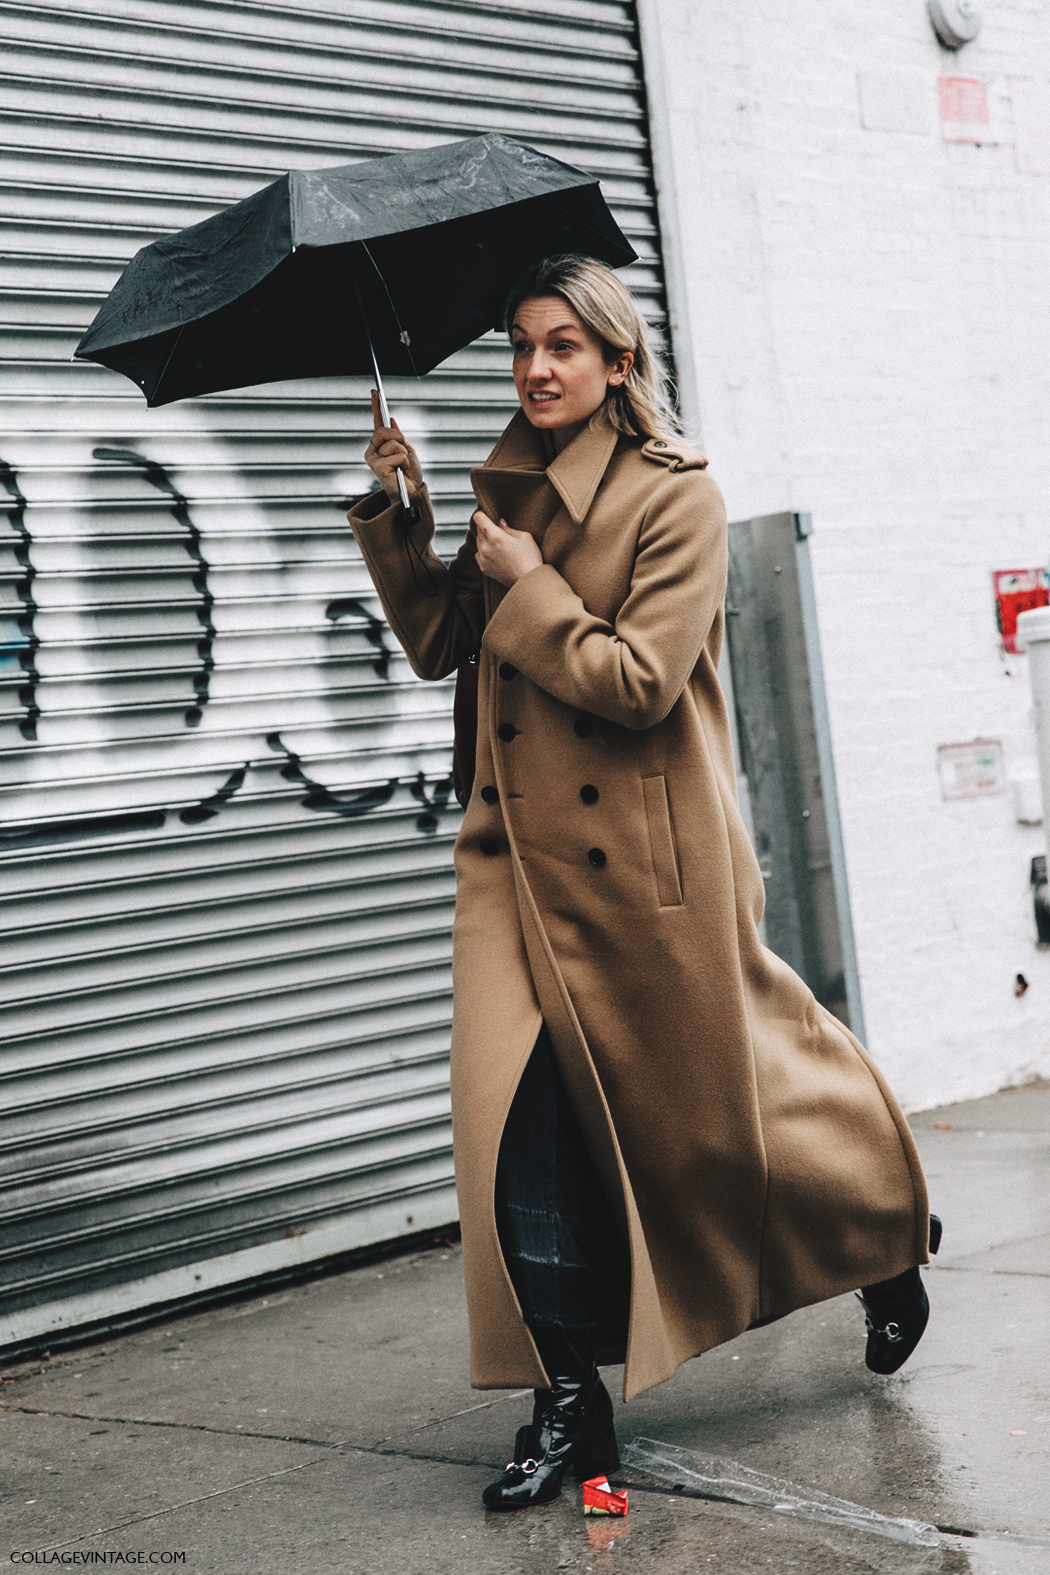 NYFW-New_York_Fashion_Week-Fall_Winter-17-Street_Style-Maxi_Camel_Coat-Gucci_Boots-2